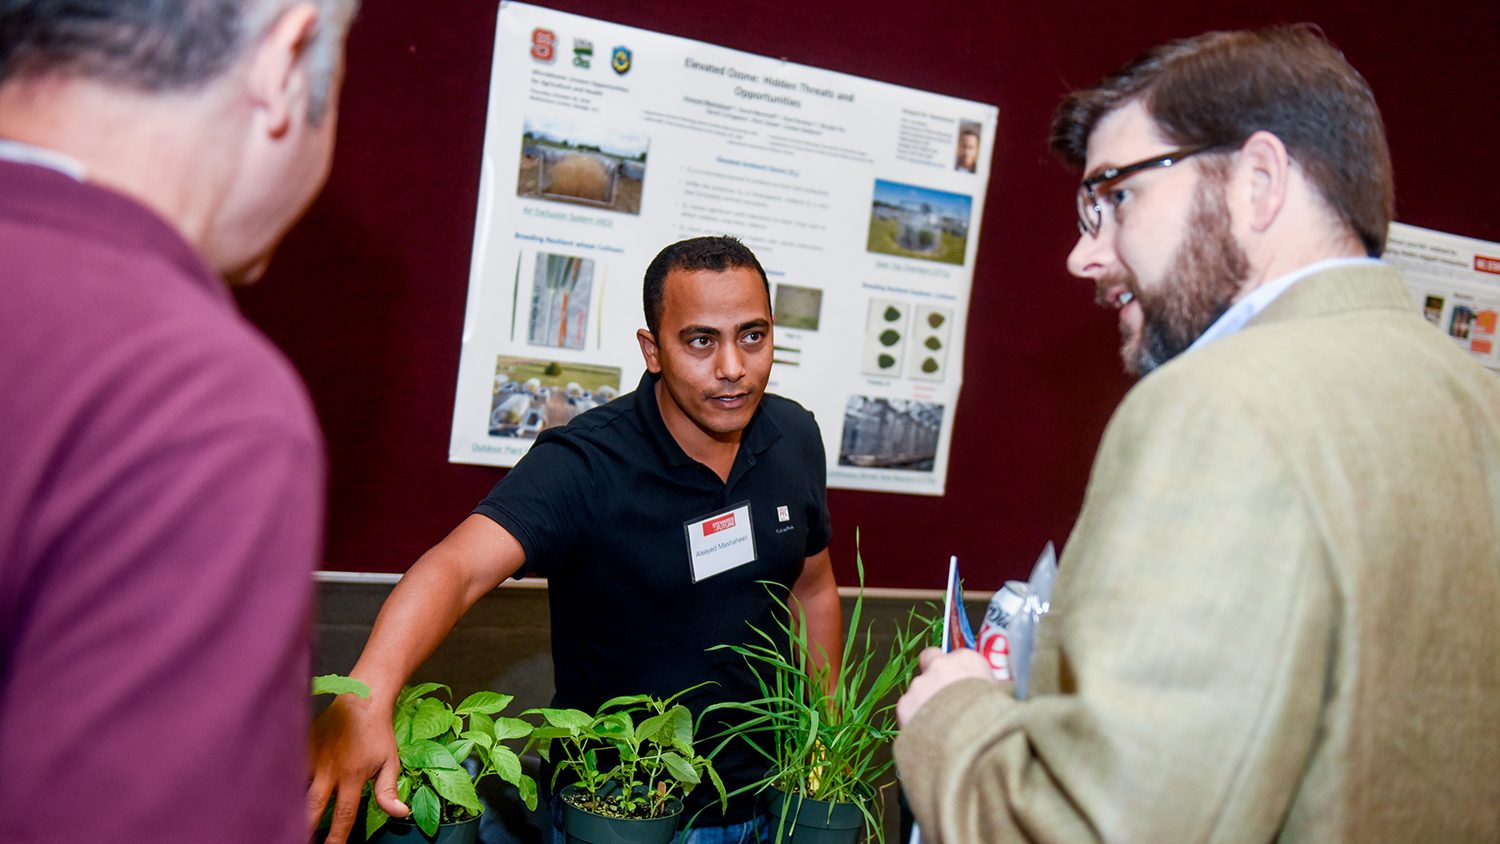 Scientist with plants explaining research to two onlookers.